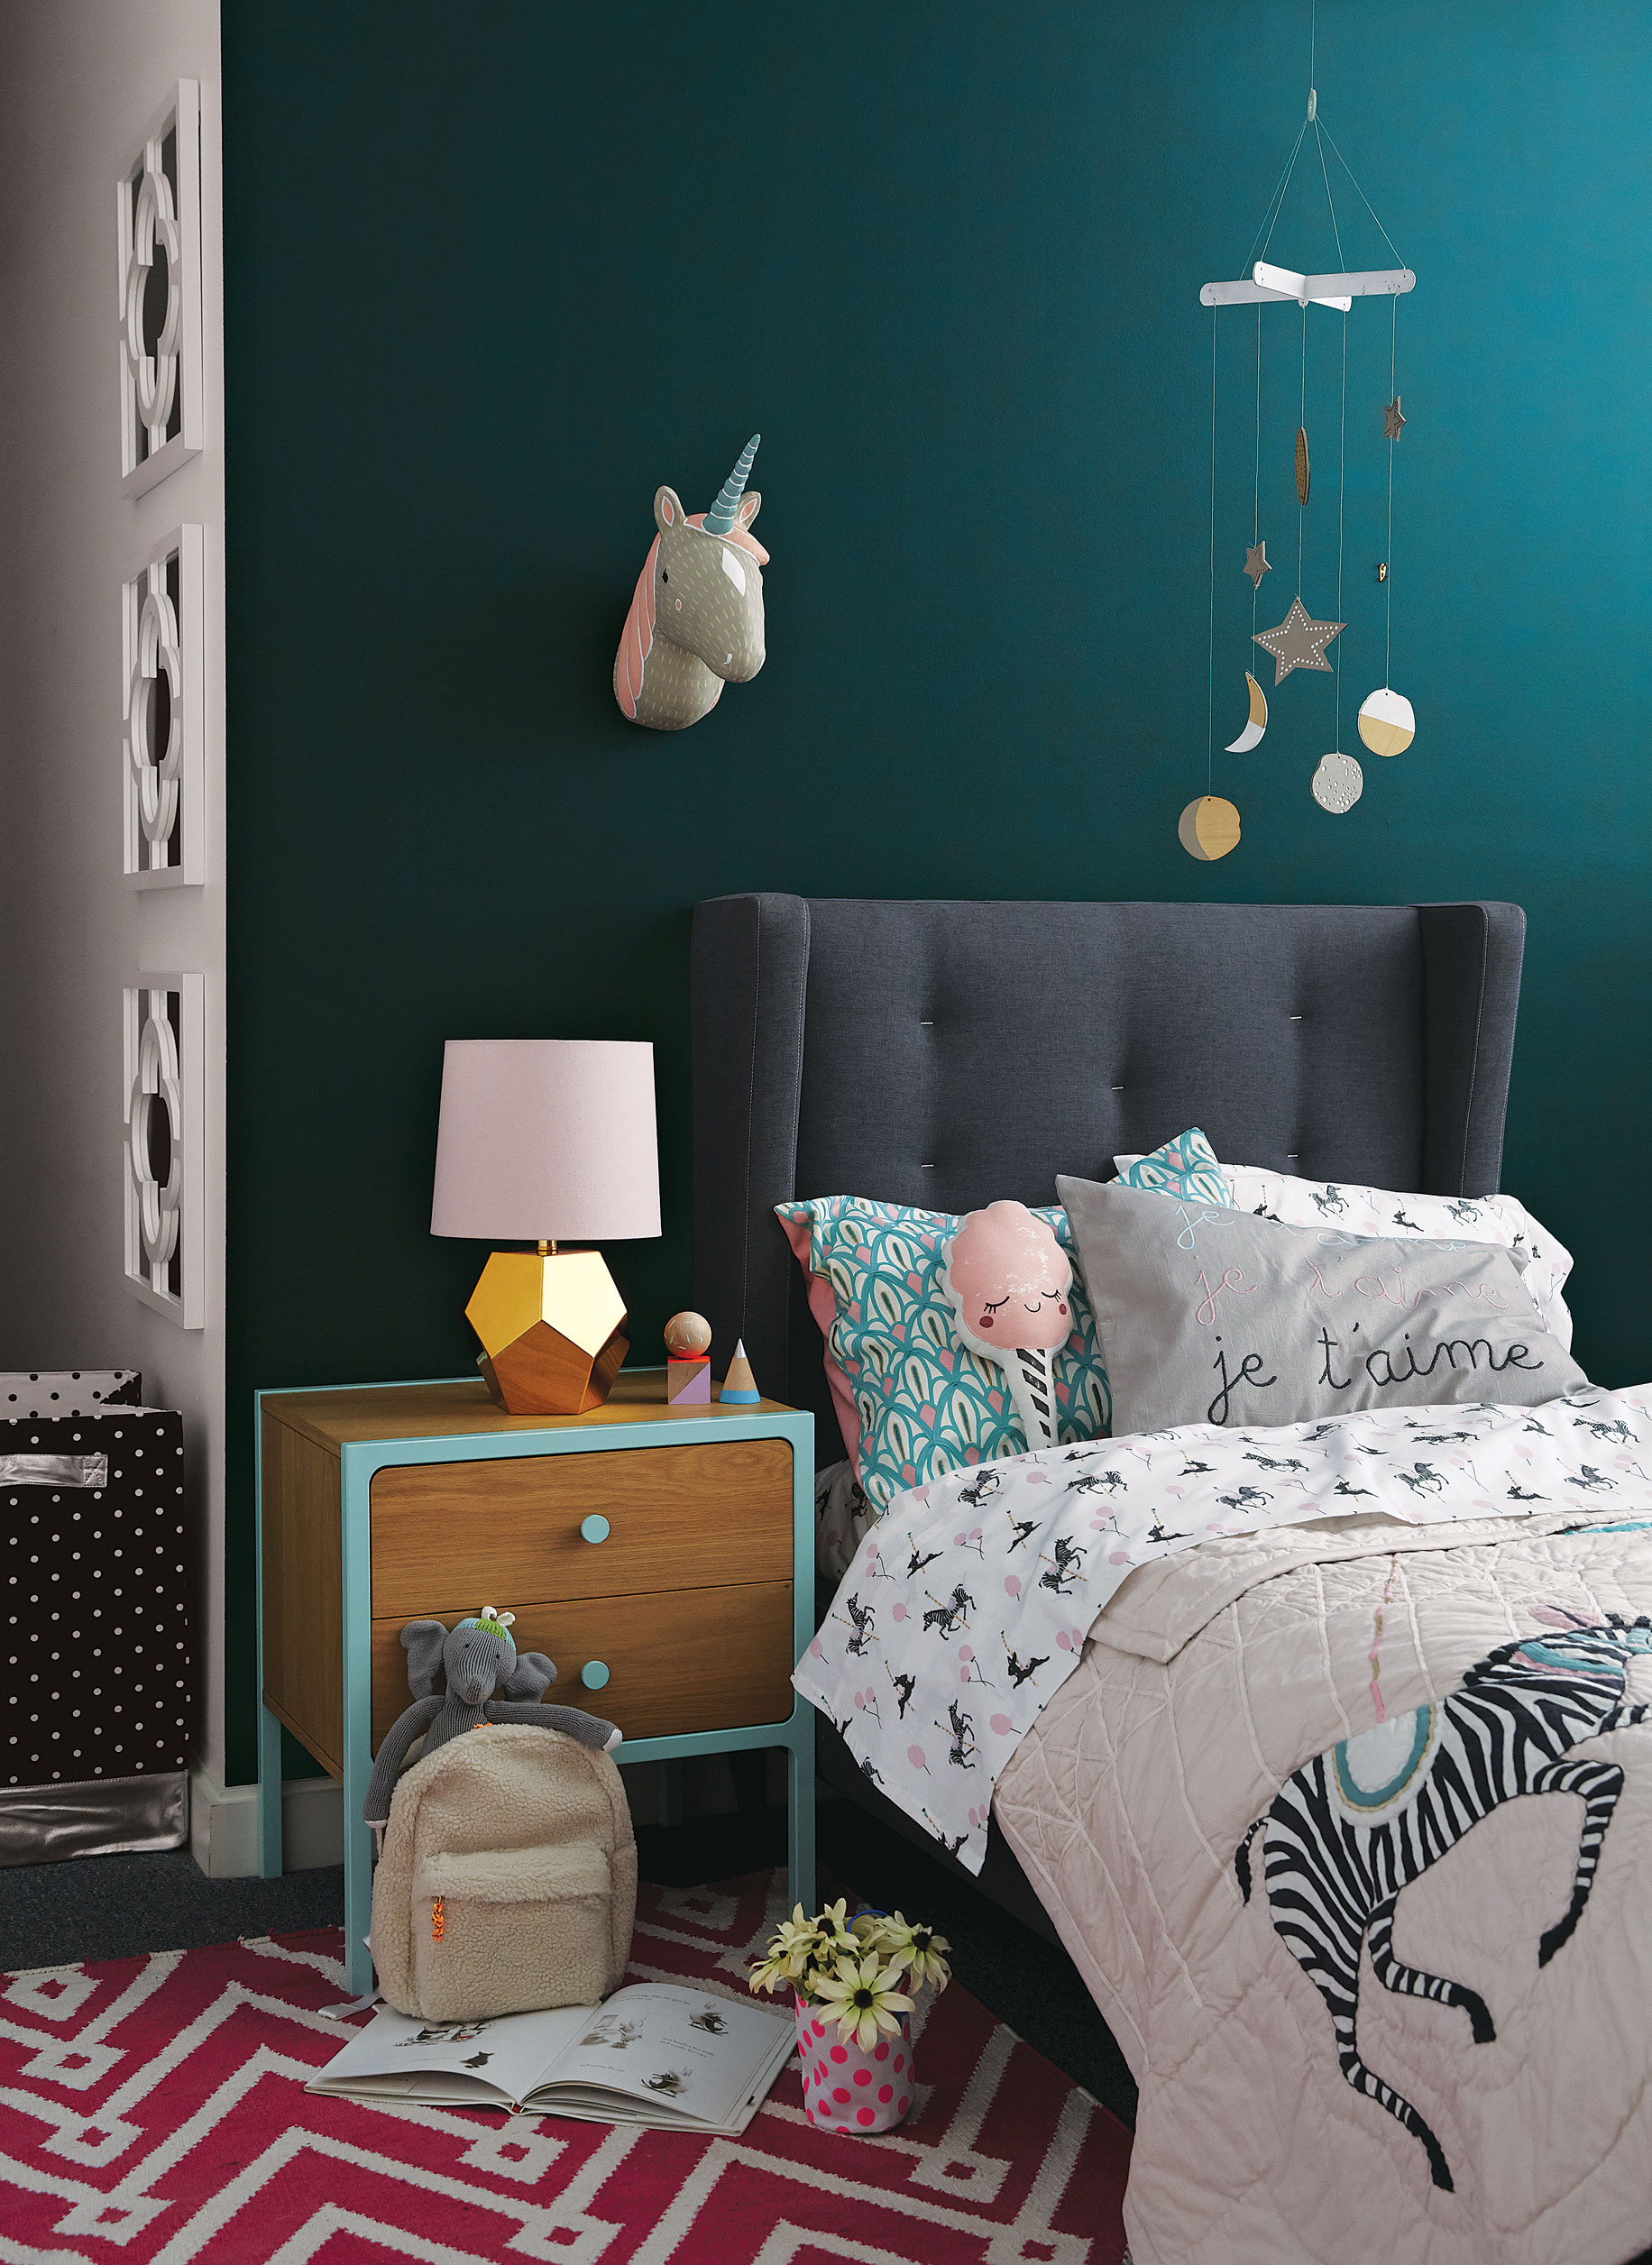 How to Use Rich Wall Colors in Kids Rooms | Crate